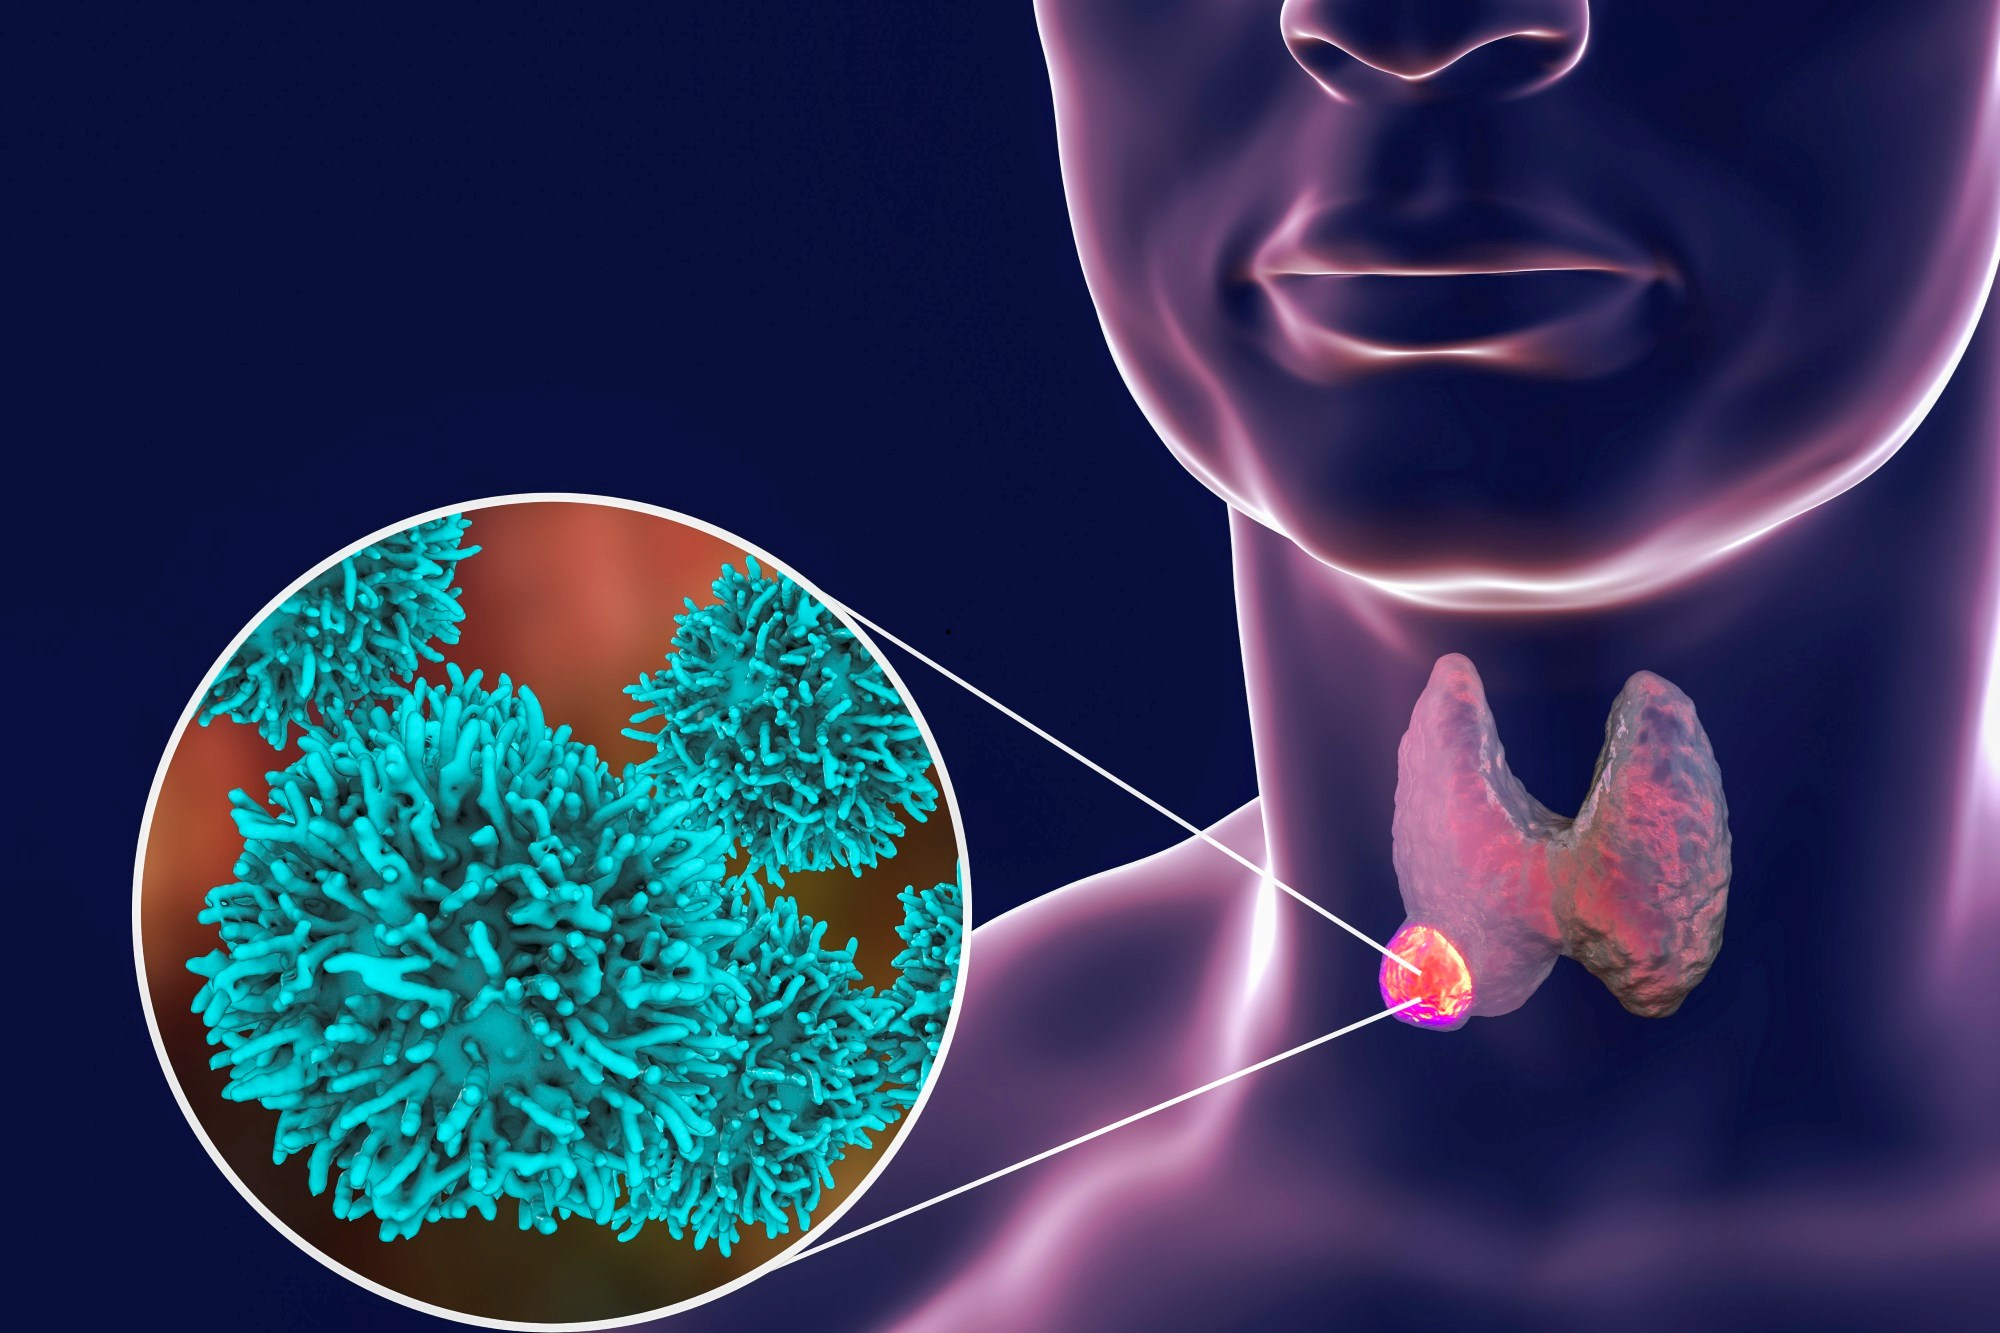 A higher proportion of participants chose total thyroidectomy when 'papillary thyroid cancer' was used to describe the condition versus 'papillary lesion' or 'abnormal cells.'